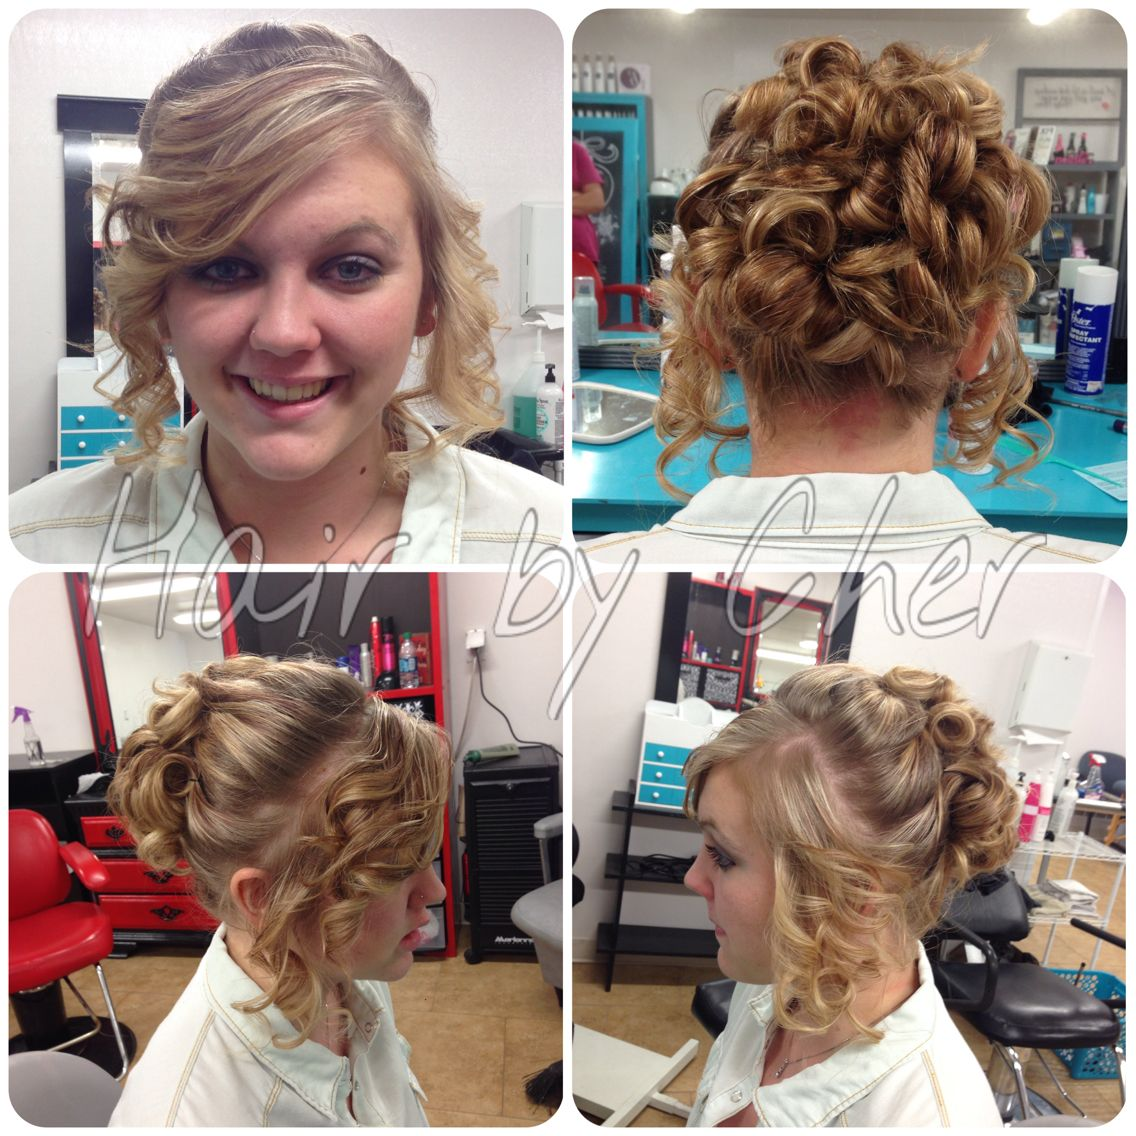 prom hair up-do. beautiful blonde hair pulled back in pin